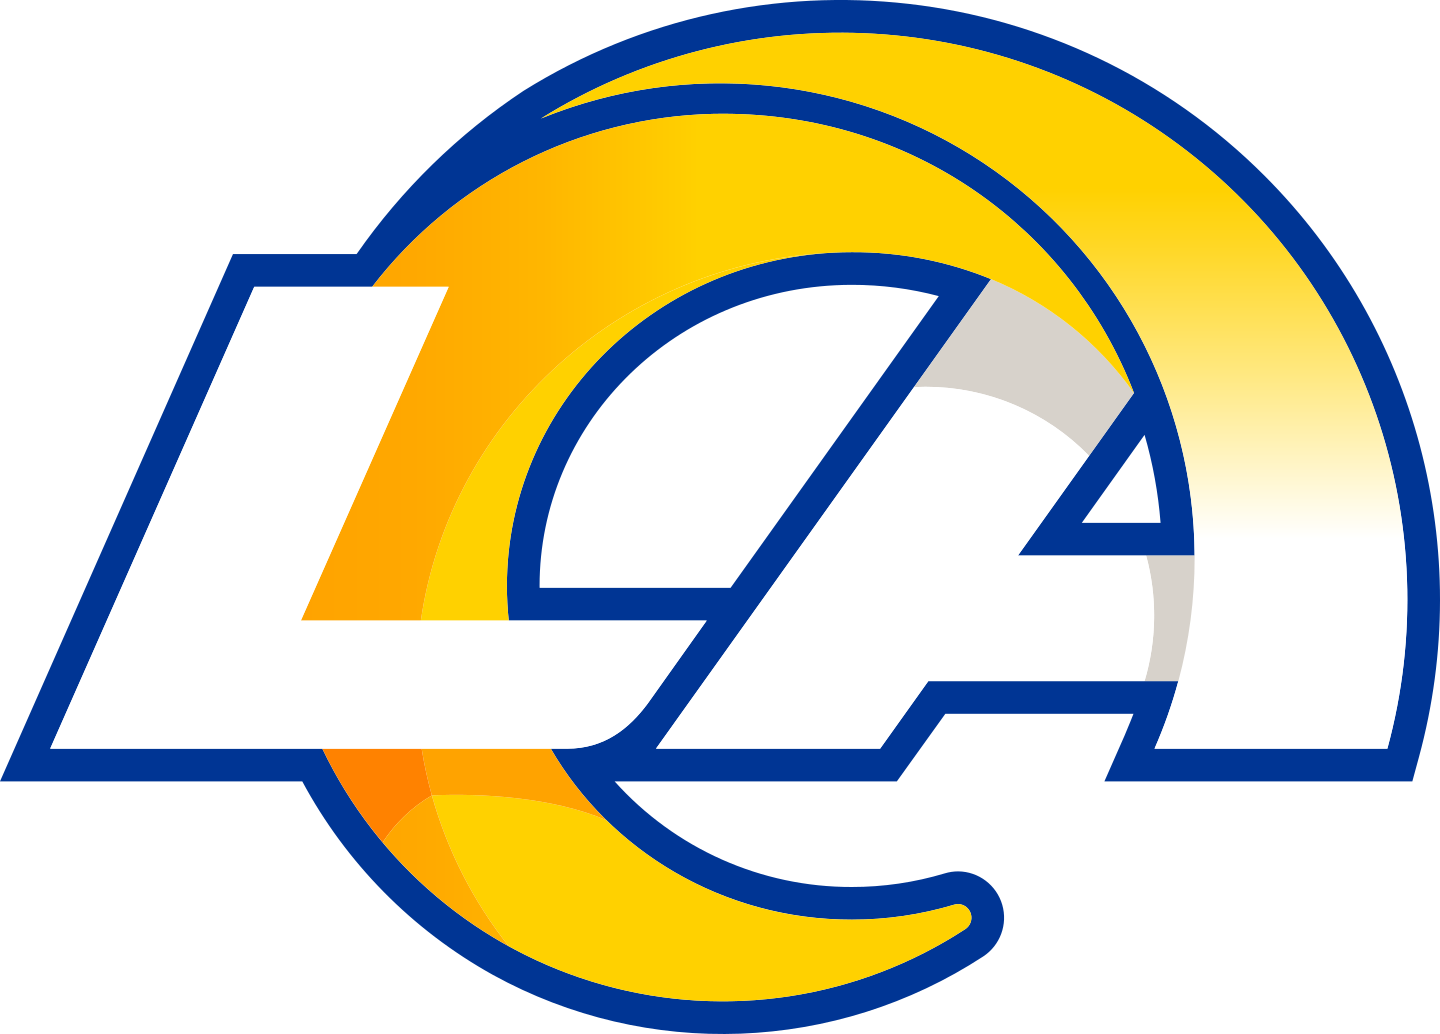 la rams logo 3 - Los Angeles Rams Logo